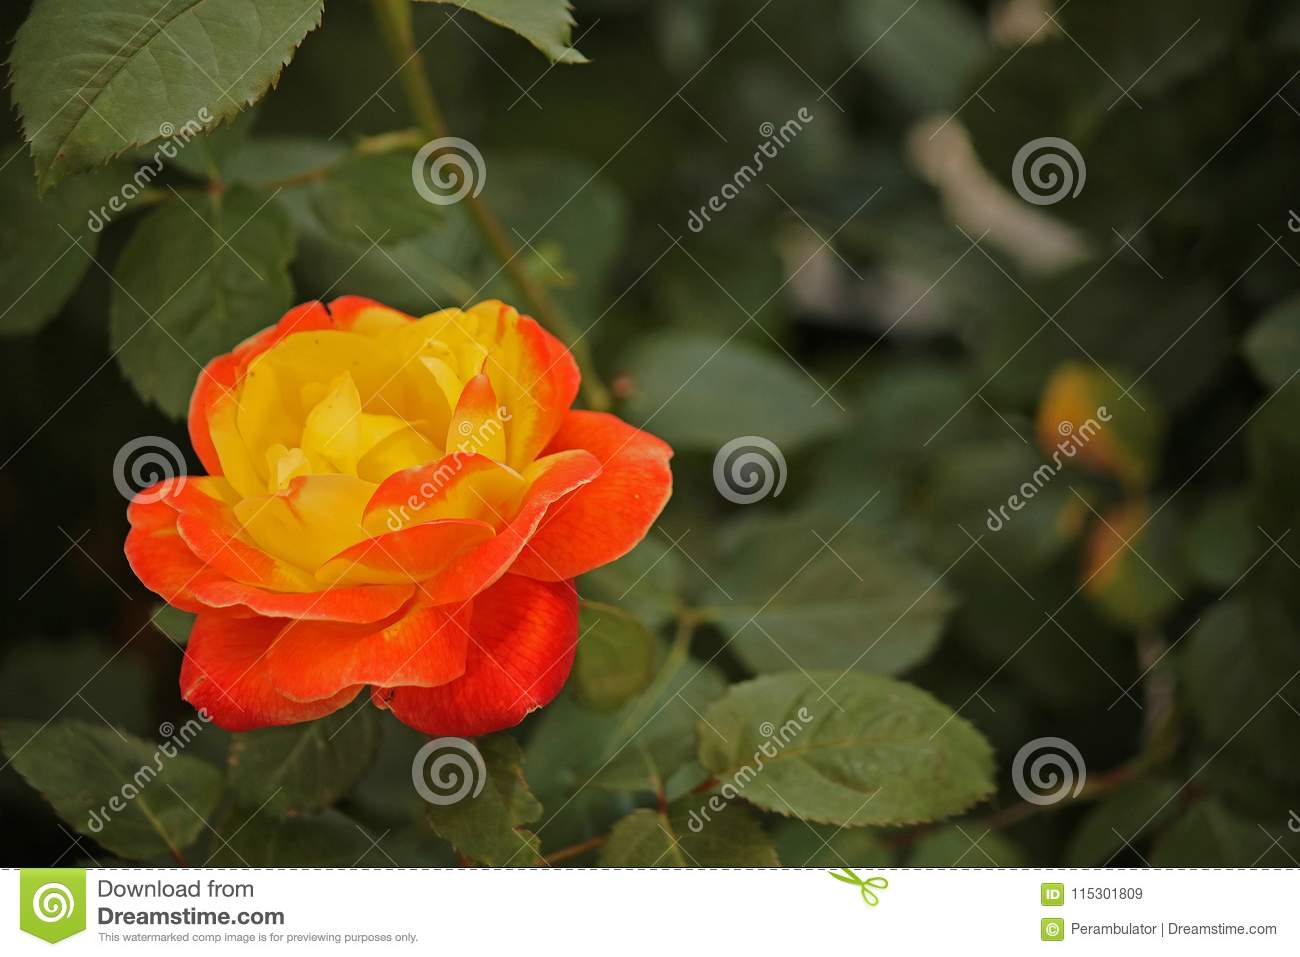 two toned yellow and red rose stock image image of bright light